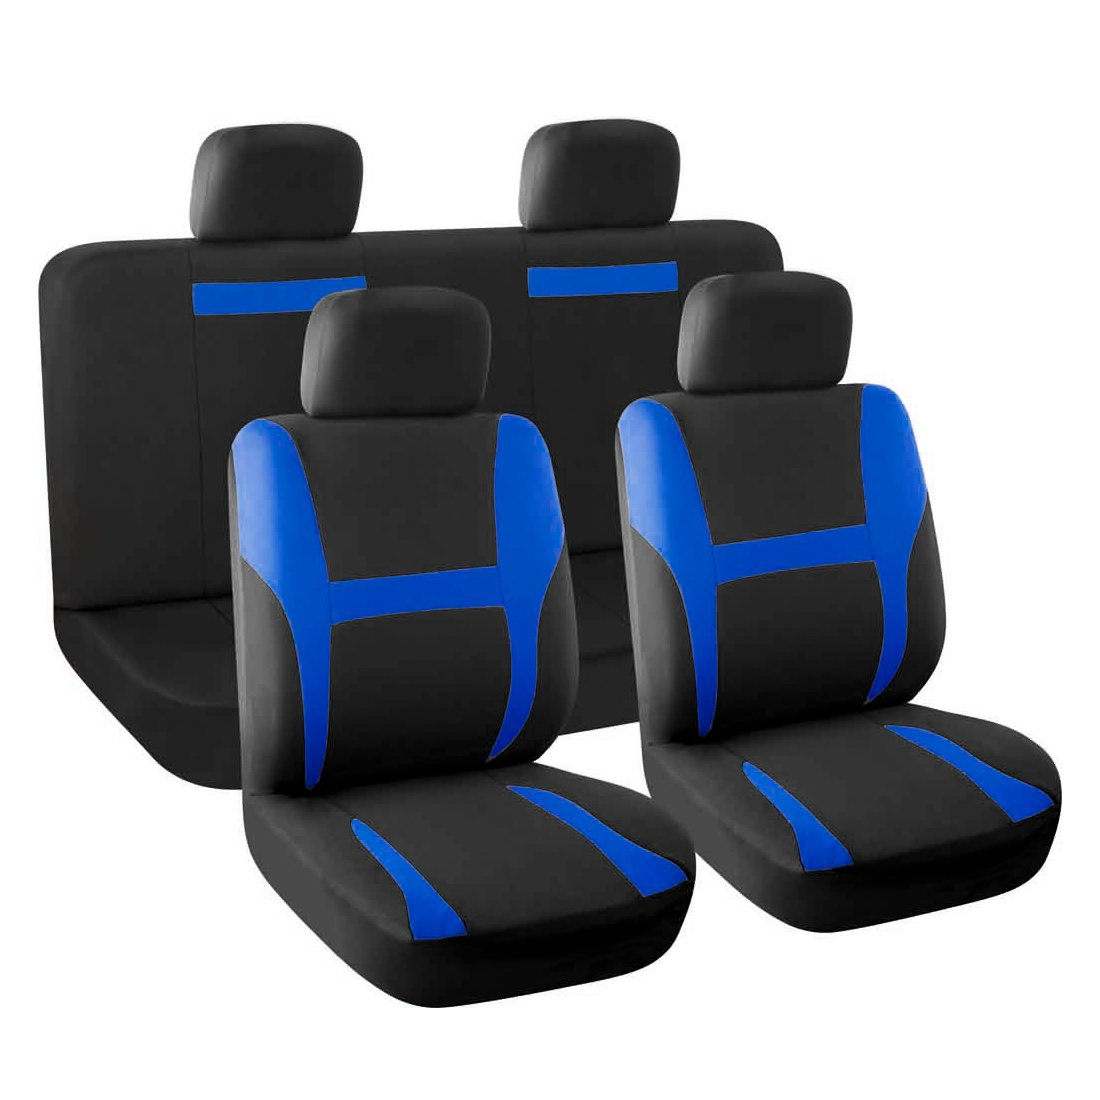 uxcell 8 piece New Car Seat Covers Full Set Blue Black for Auto SUV w//Head Rests a16071900ux0186